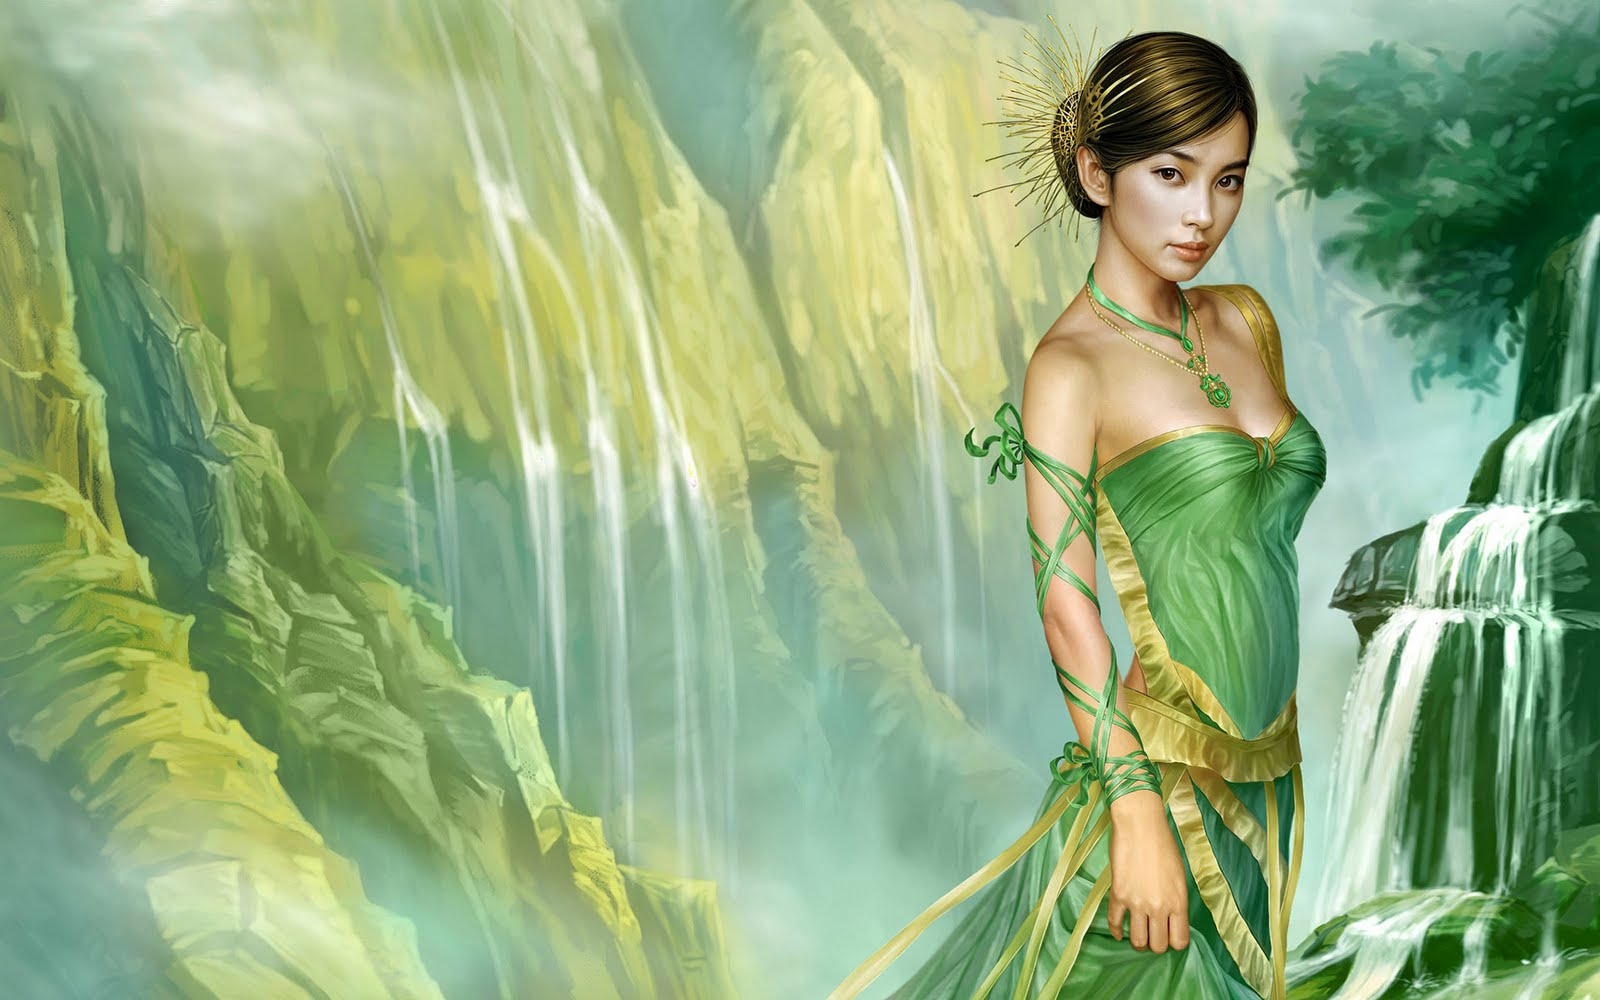 New Art Funny Wallpapers Jokes New Fantasy Girls -5009